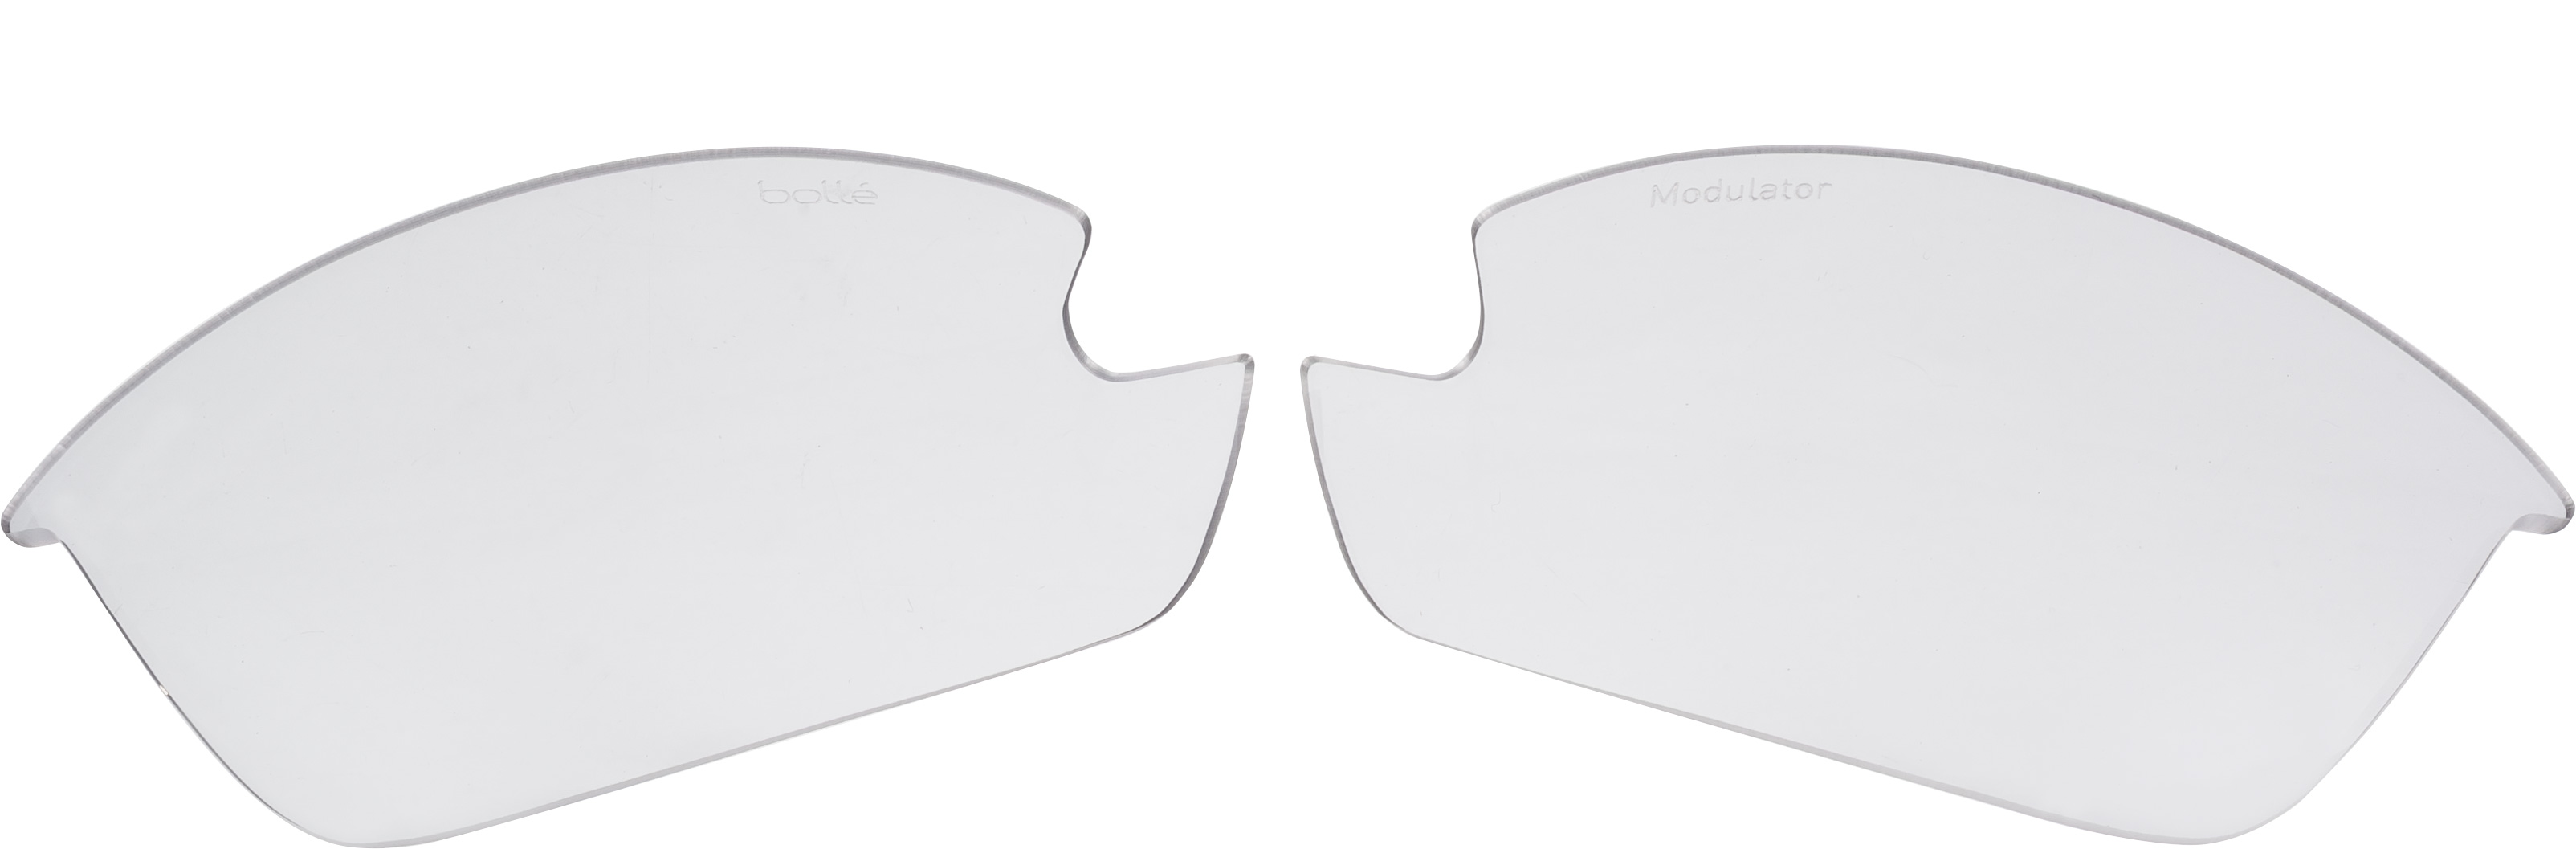 8c28cf56afd4 Bolle Bolt S Replacement Lenses   Up to 12% Off Free Shipping over $49!